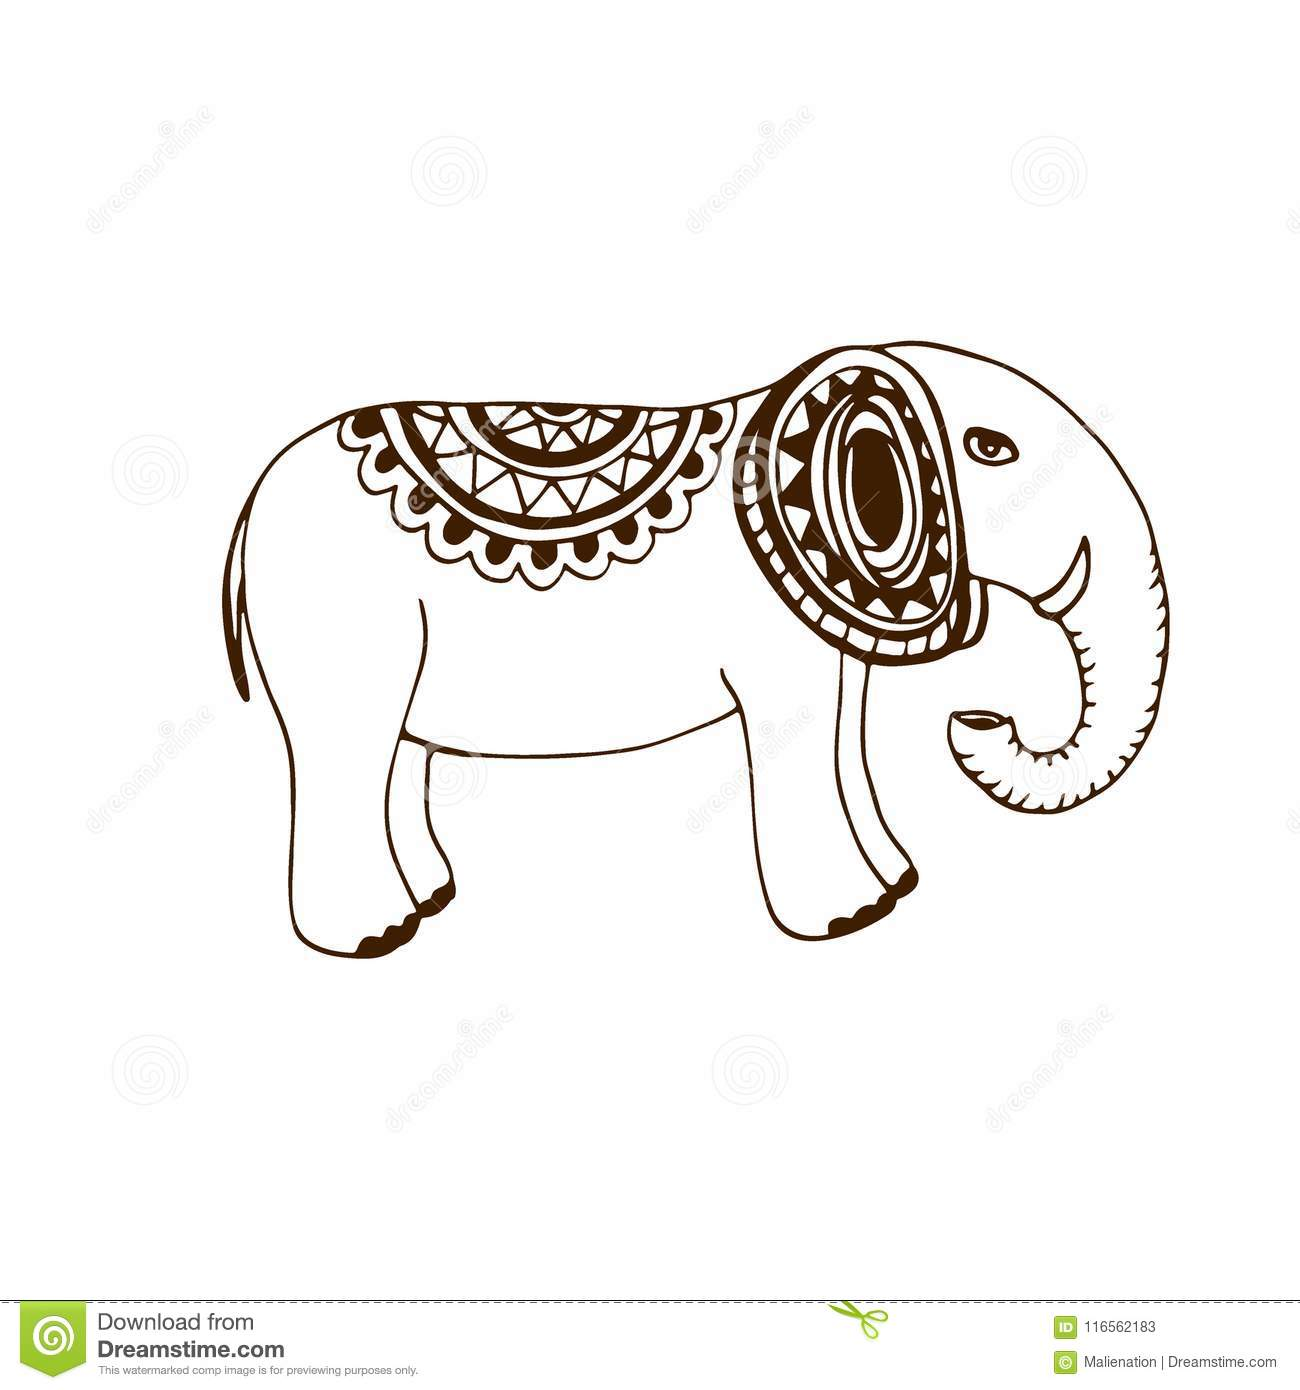 Vector Elephant Illustration Indian Henna Tattoo Art Icon Design